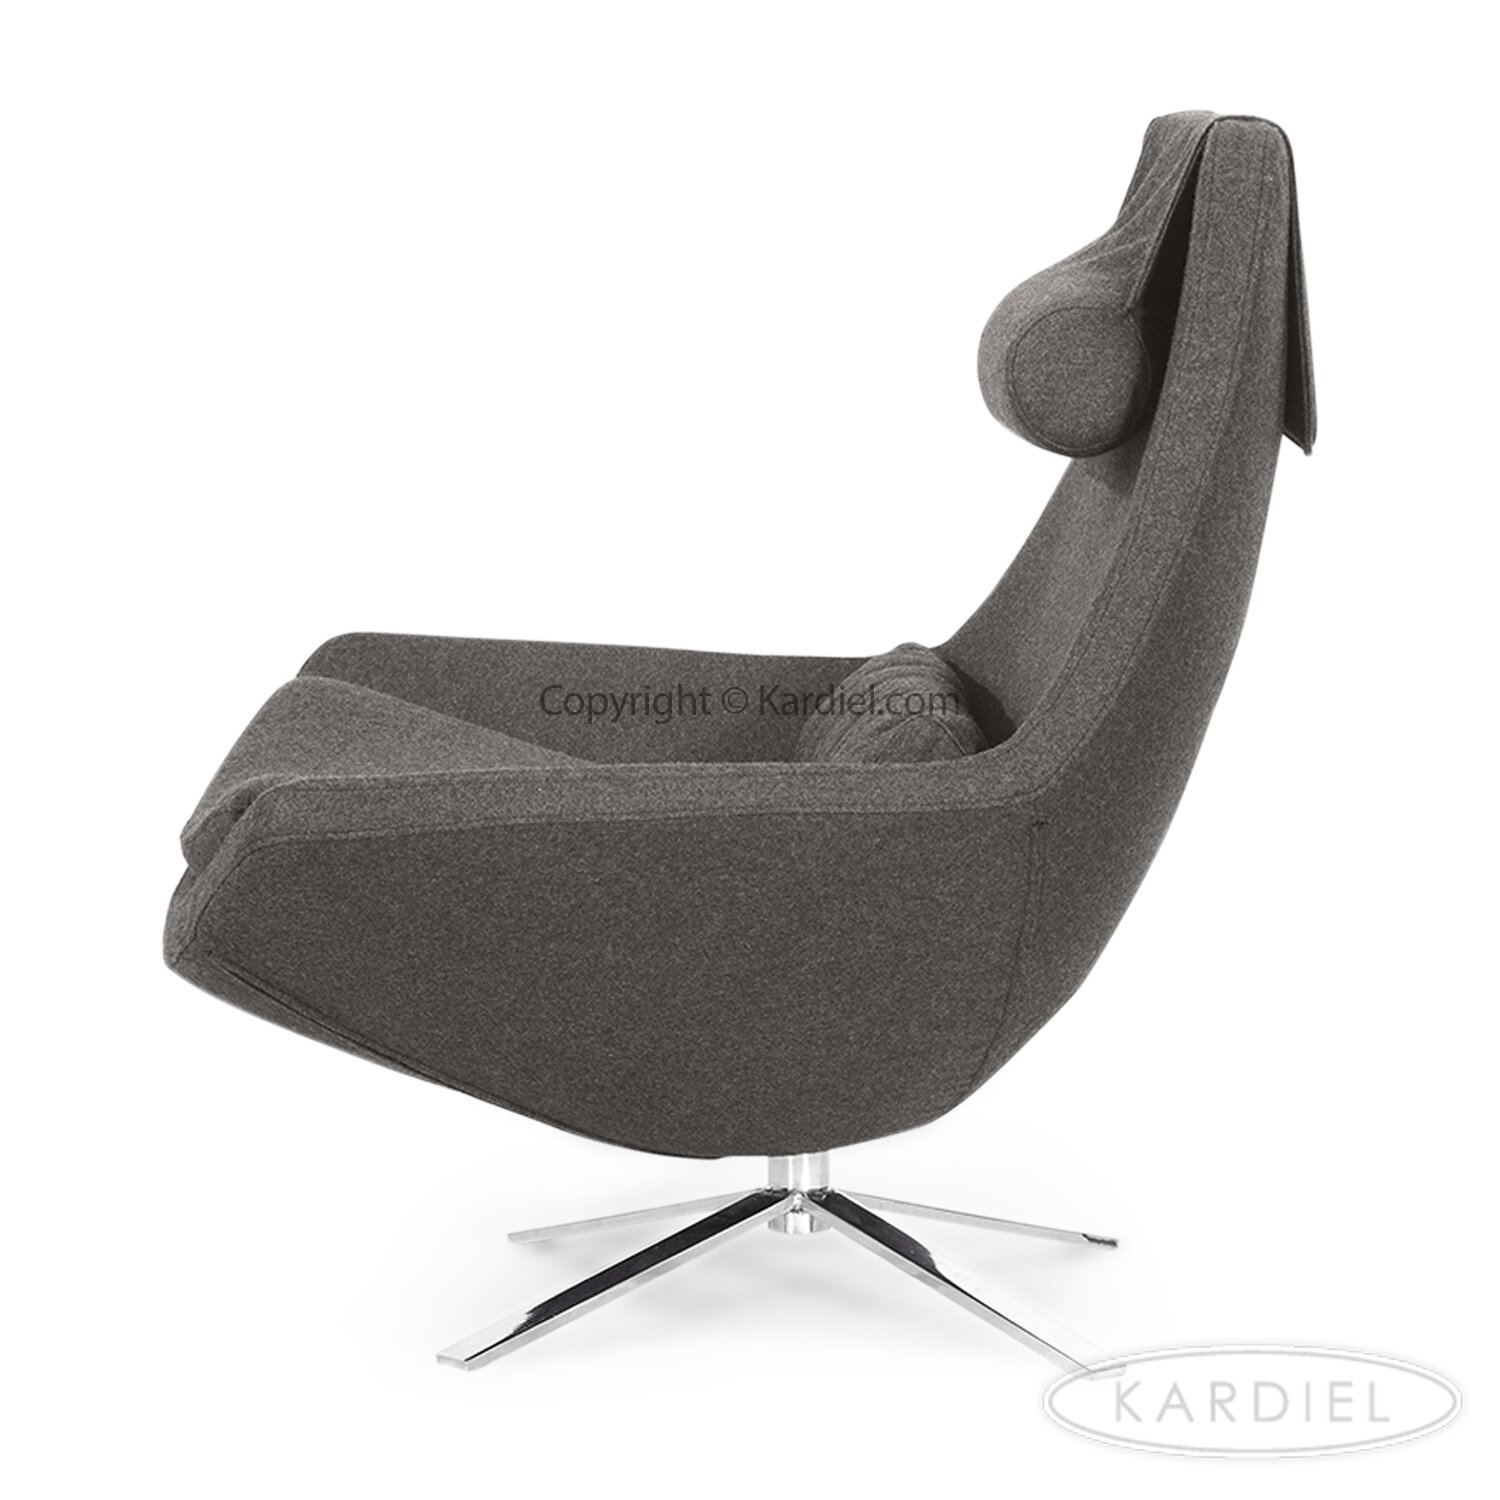 Kardiel Retropolitan Modern Wing Lounge Chair Reviews